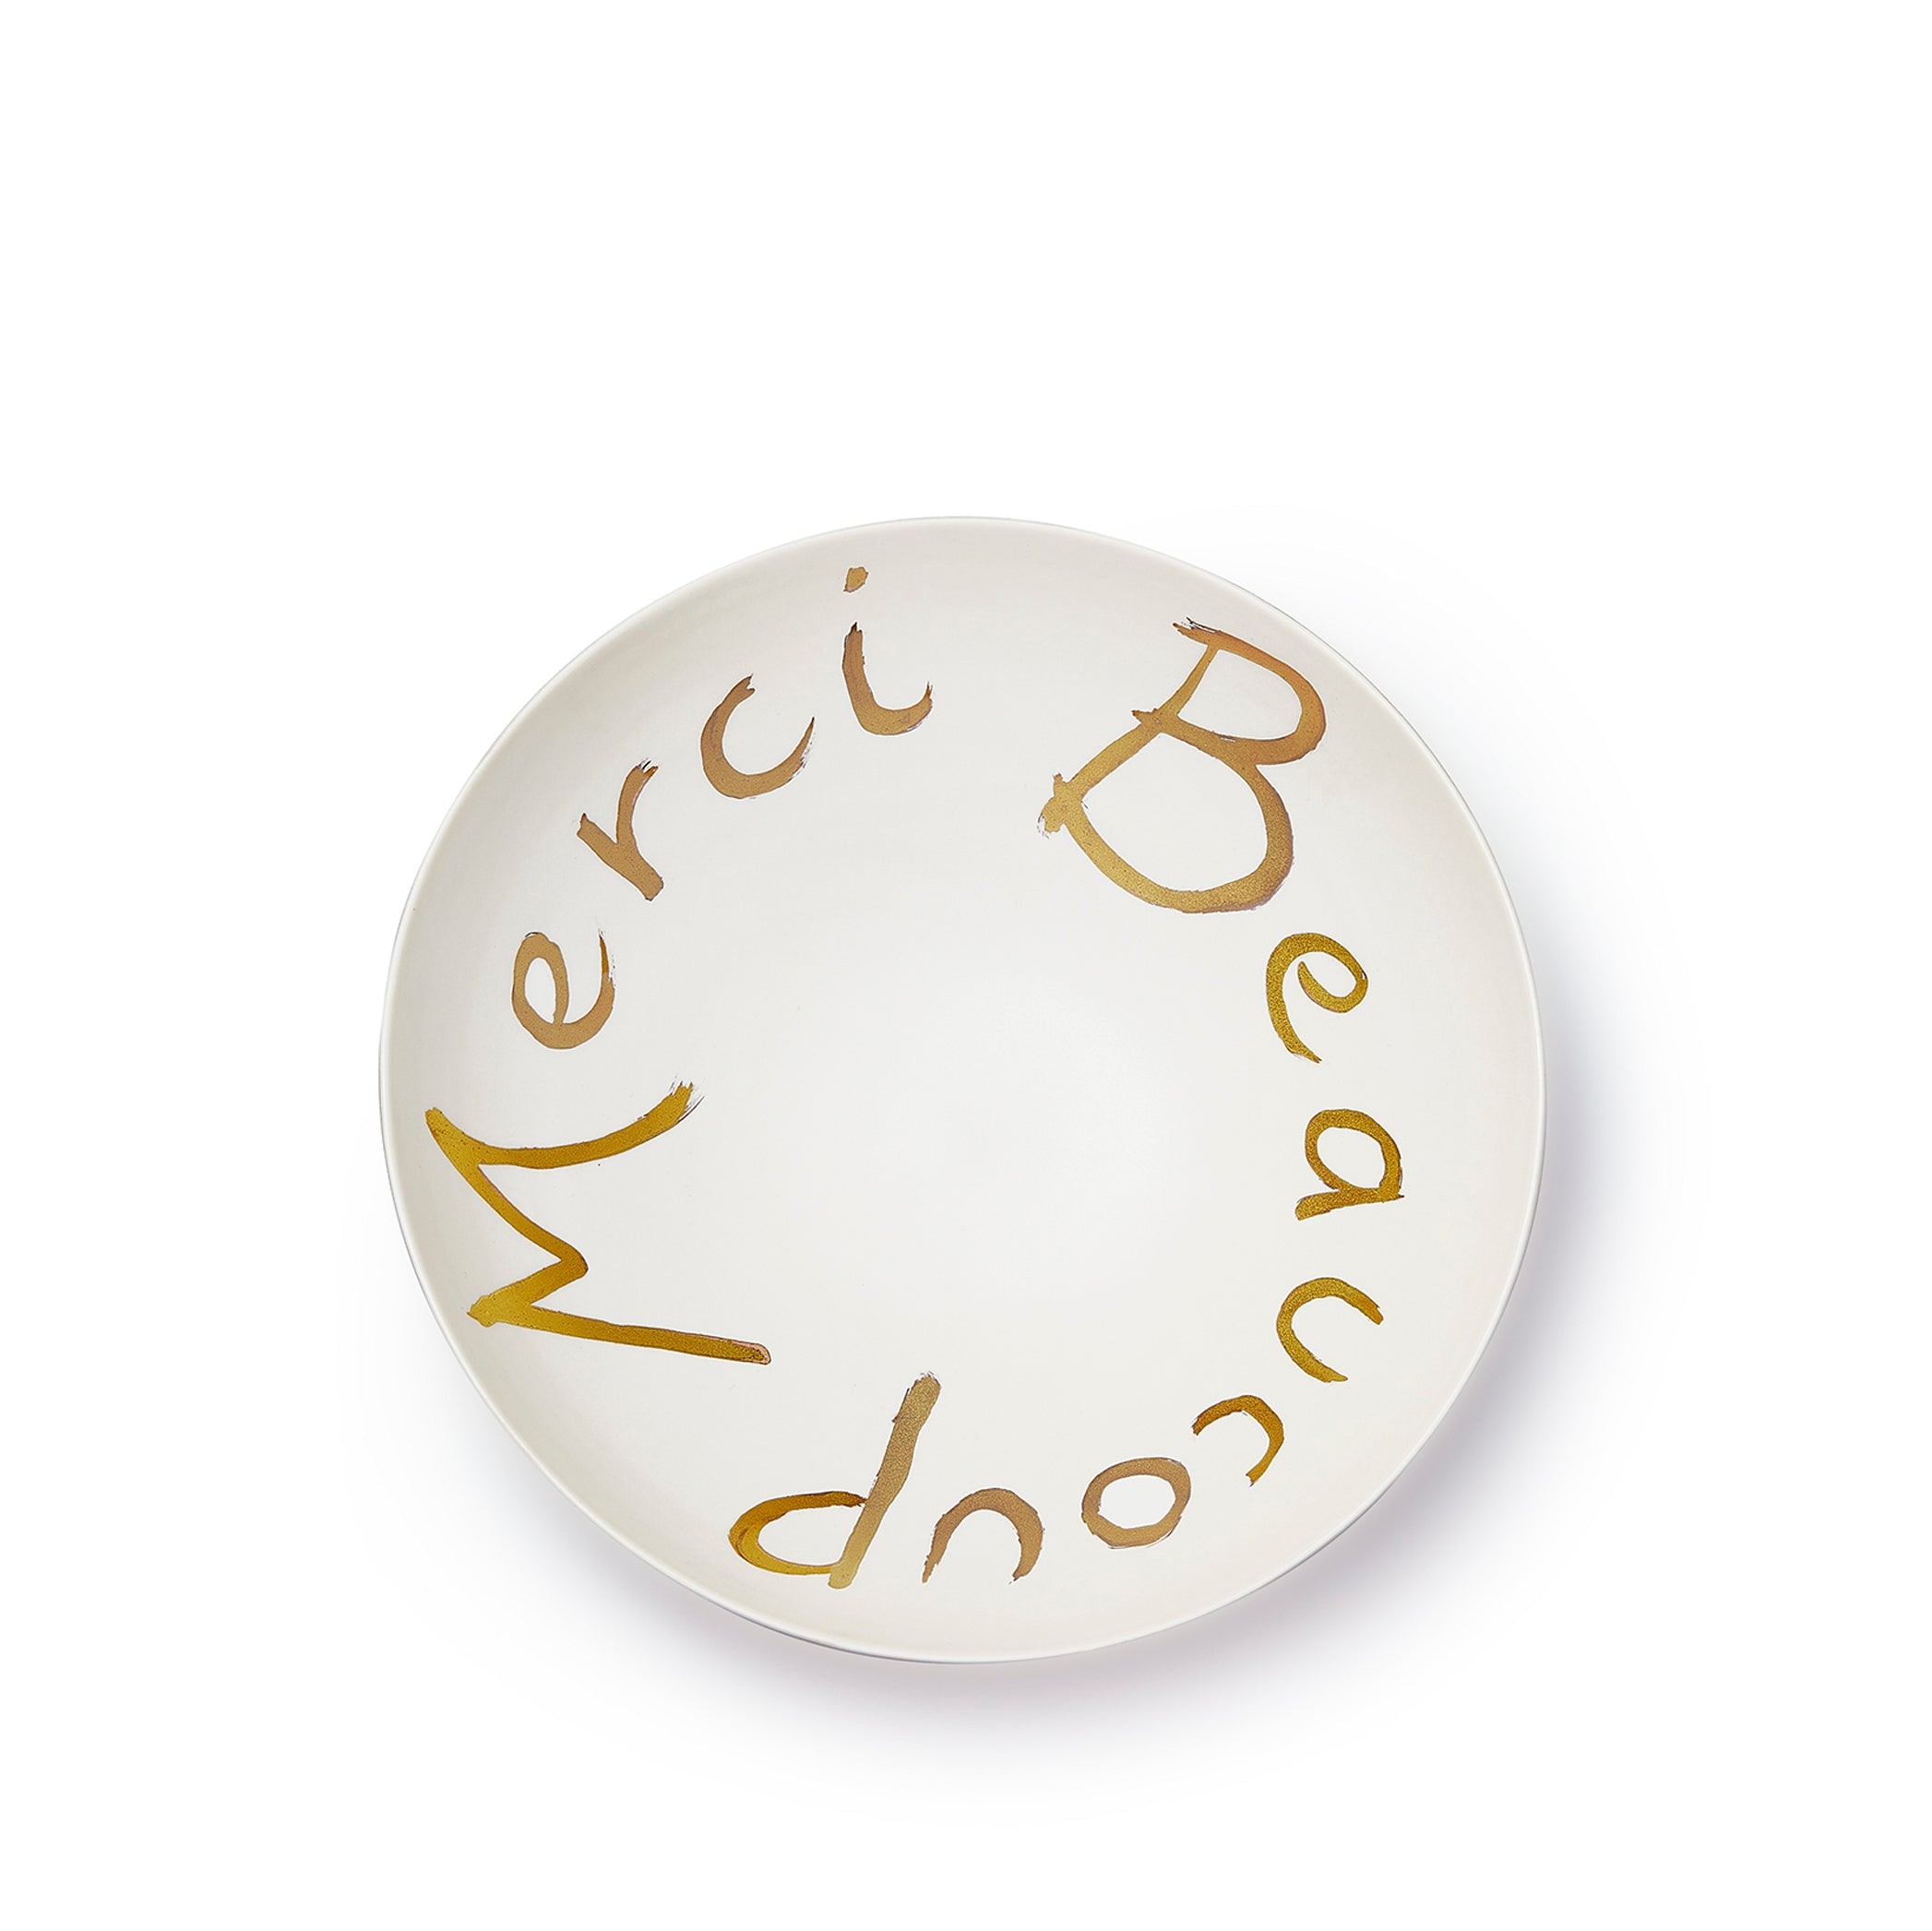 Merci Beaucoup Porcelain Bowl in Matte Gold